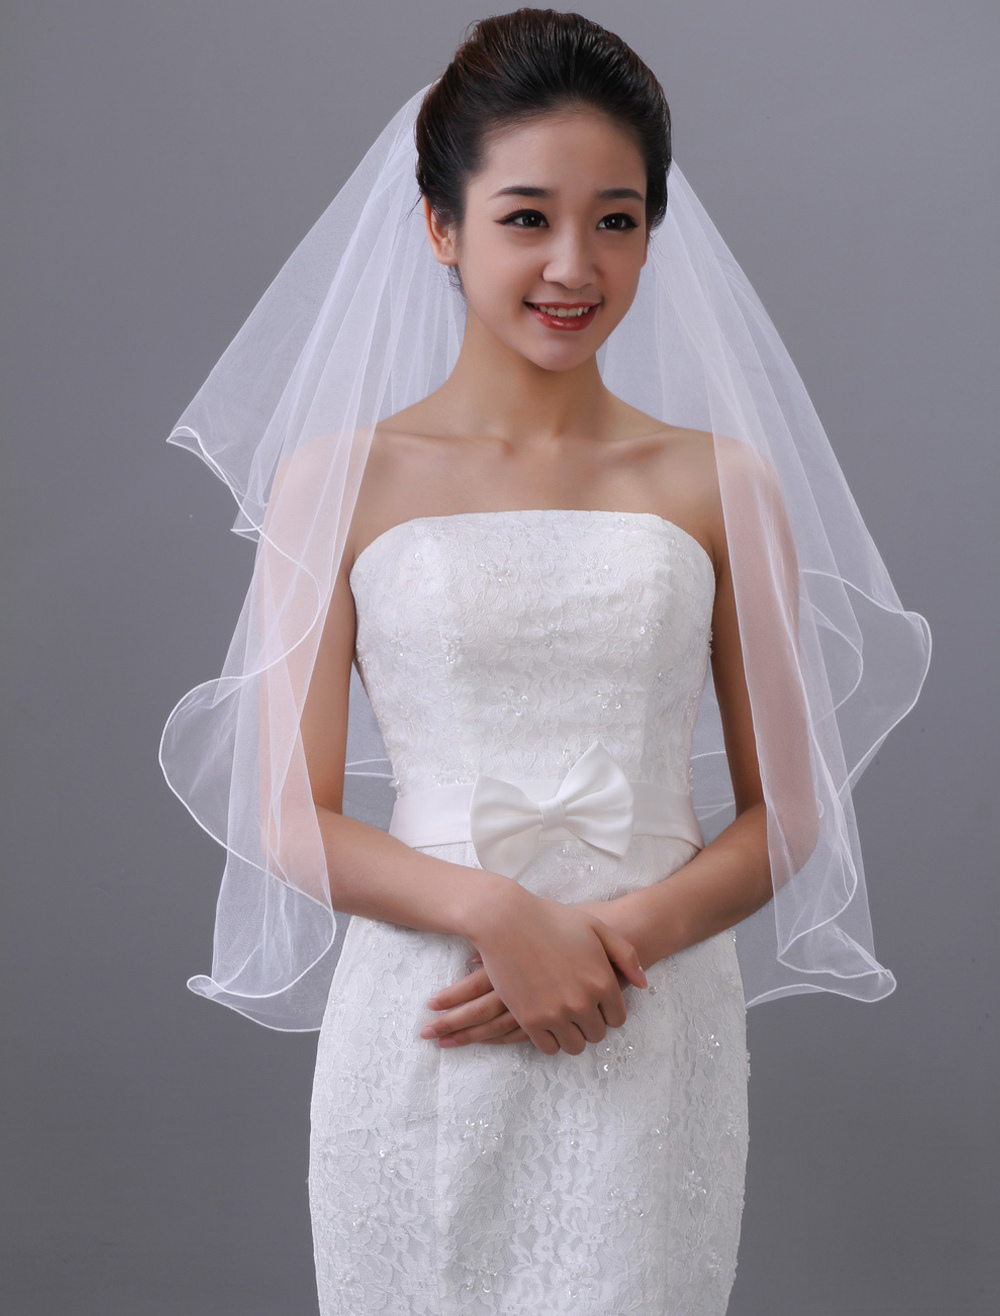 Gorgeous White Two-Tier Tulle Wedding Veil